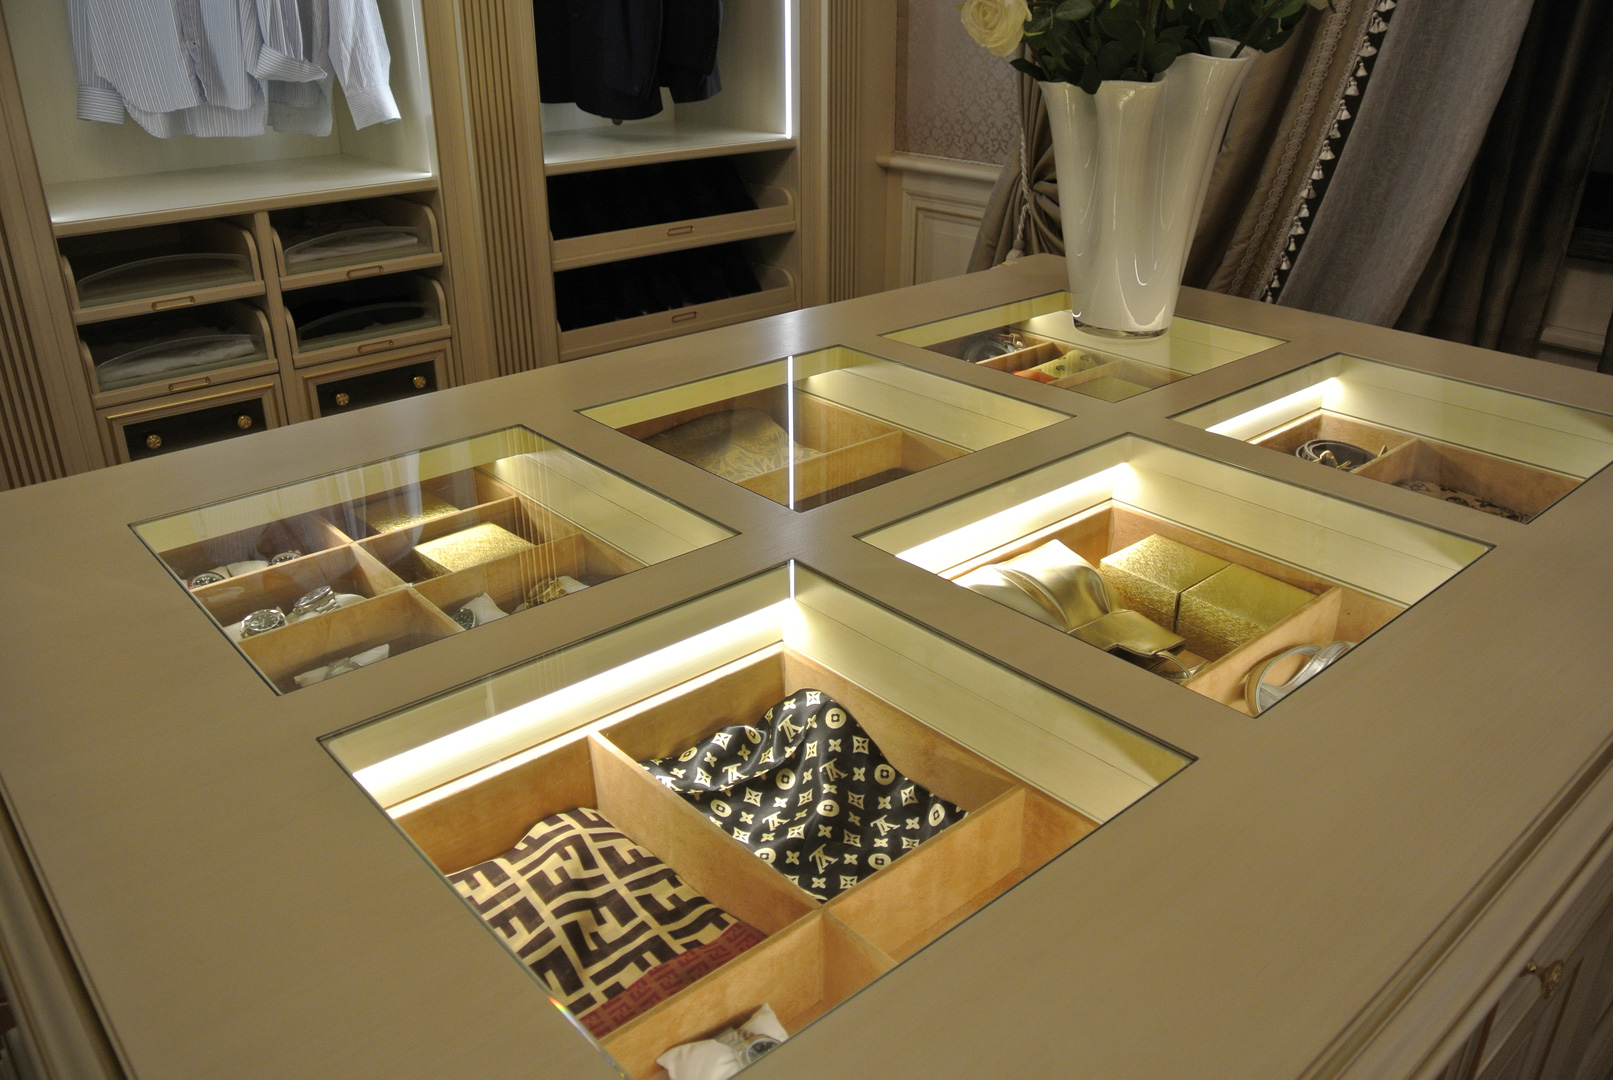 Particular view of the accessory drawers illuminated inside and trimmed with Alcantara.